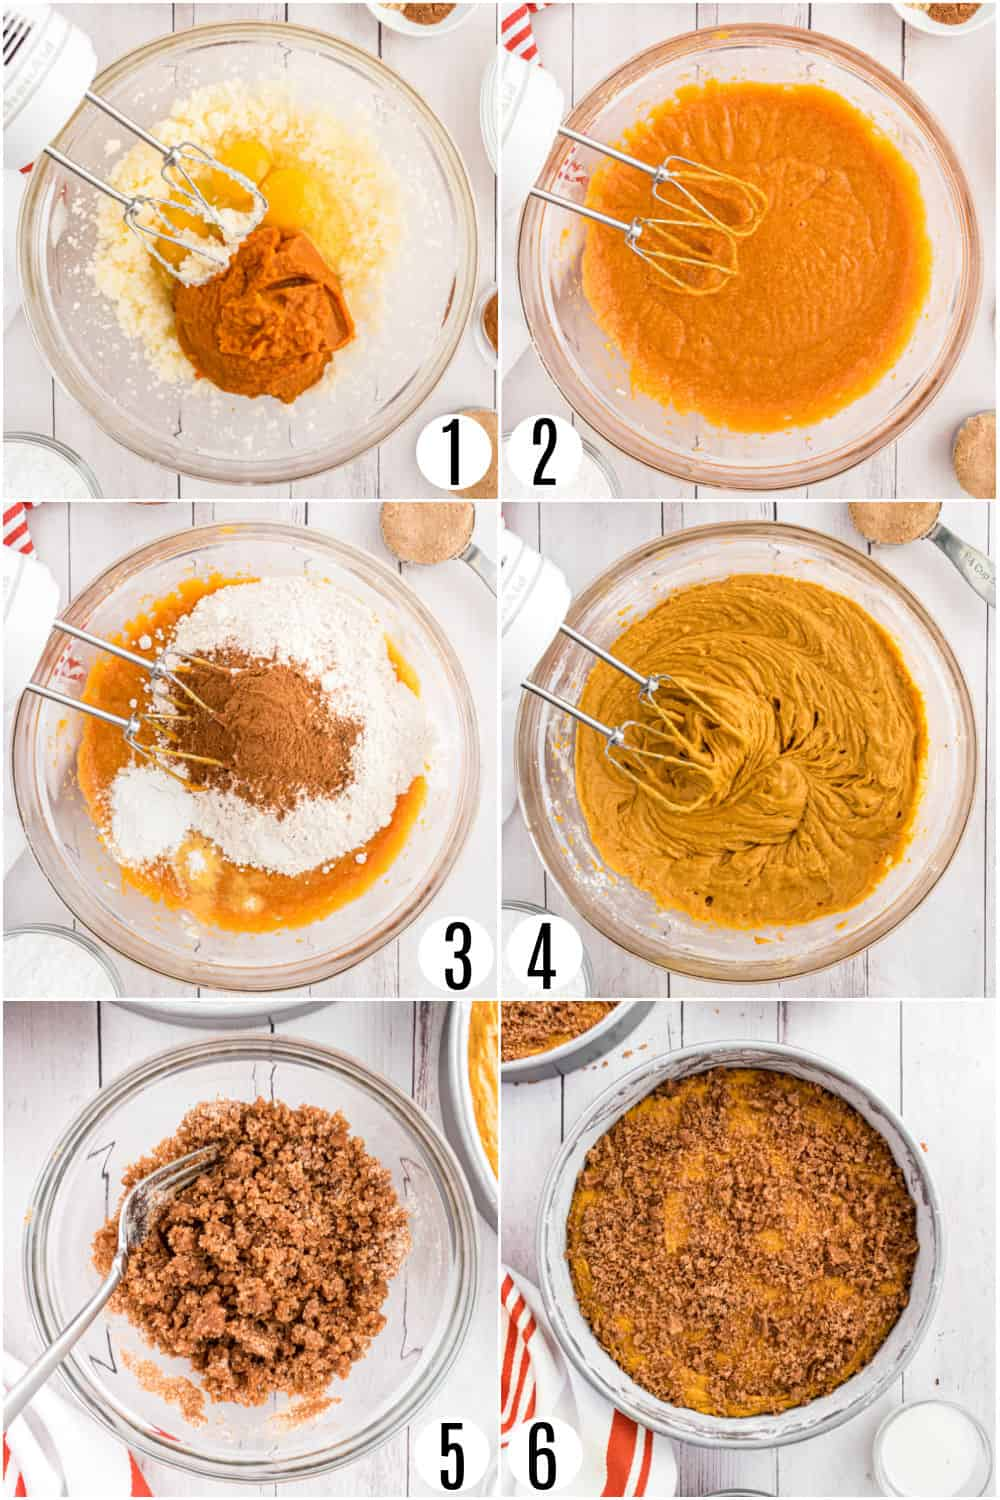 Step by step photos showing how to make pumpkin coffee cakes.